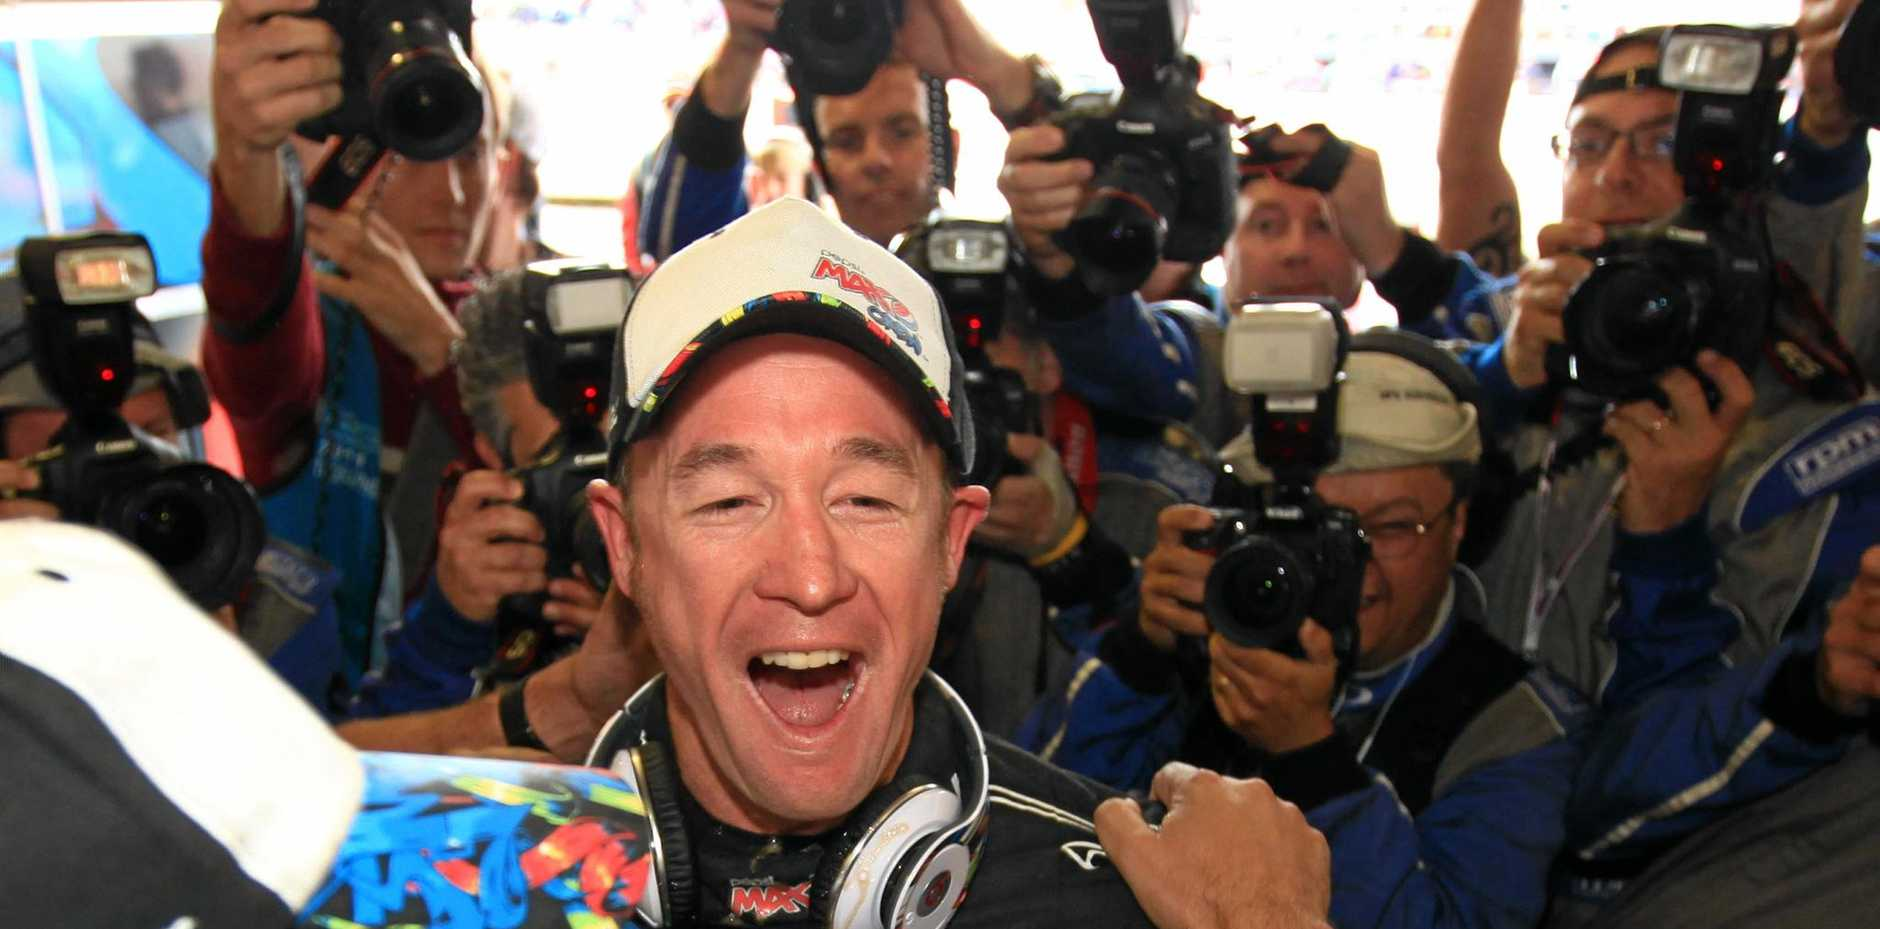 Kelly Racing's Greg Murphy reacts after claiming pole for the 2011 Bathurst 1000.